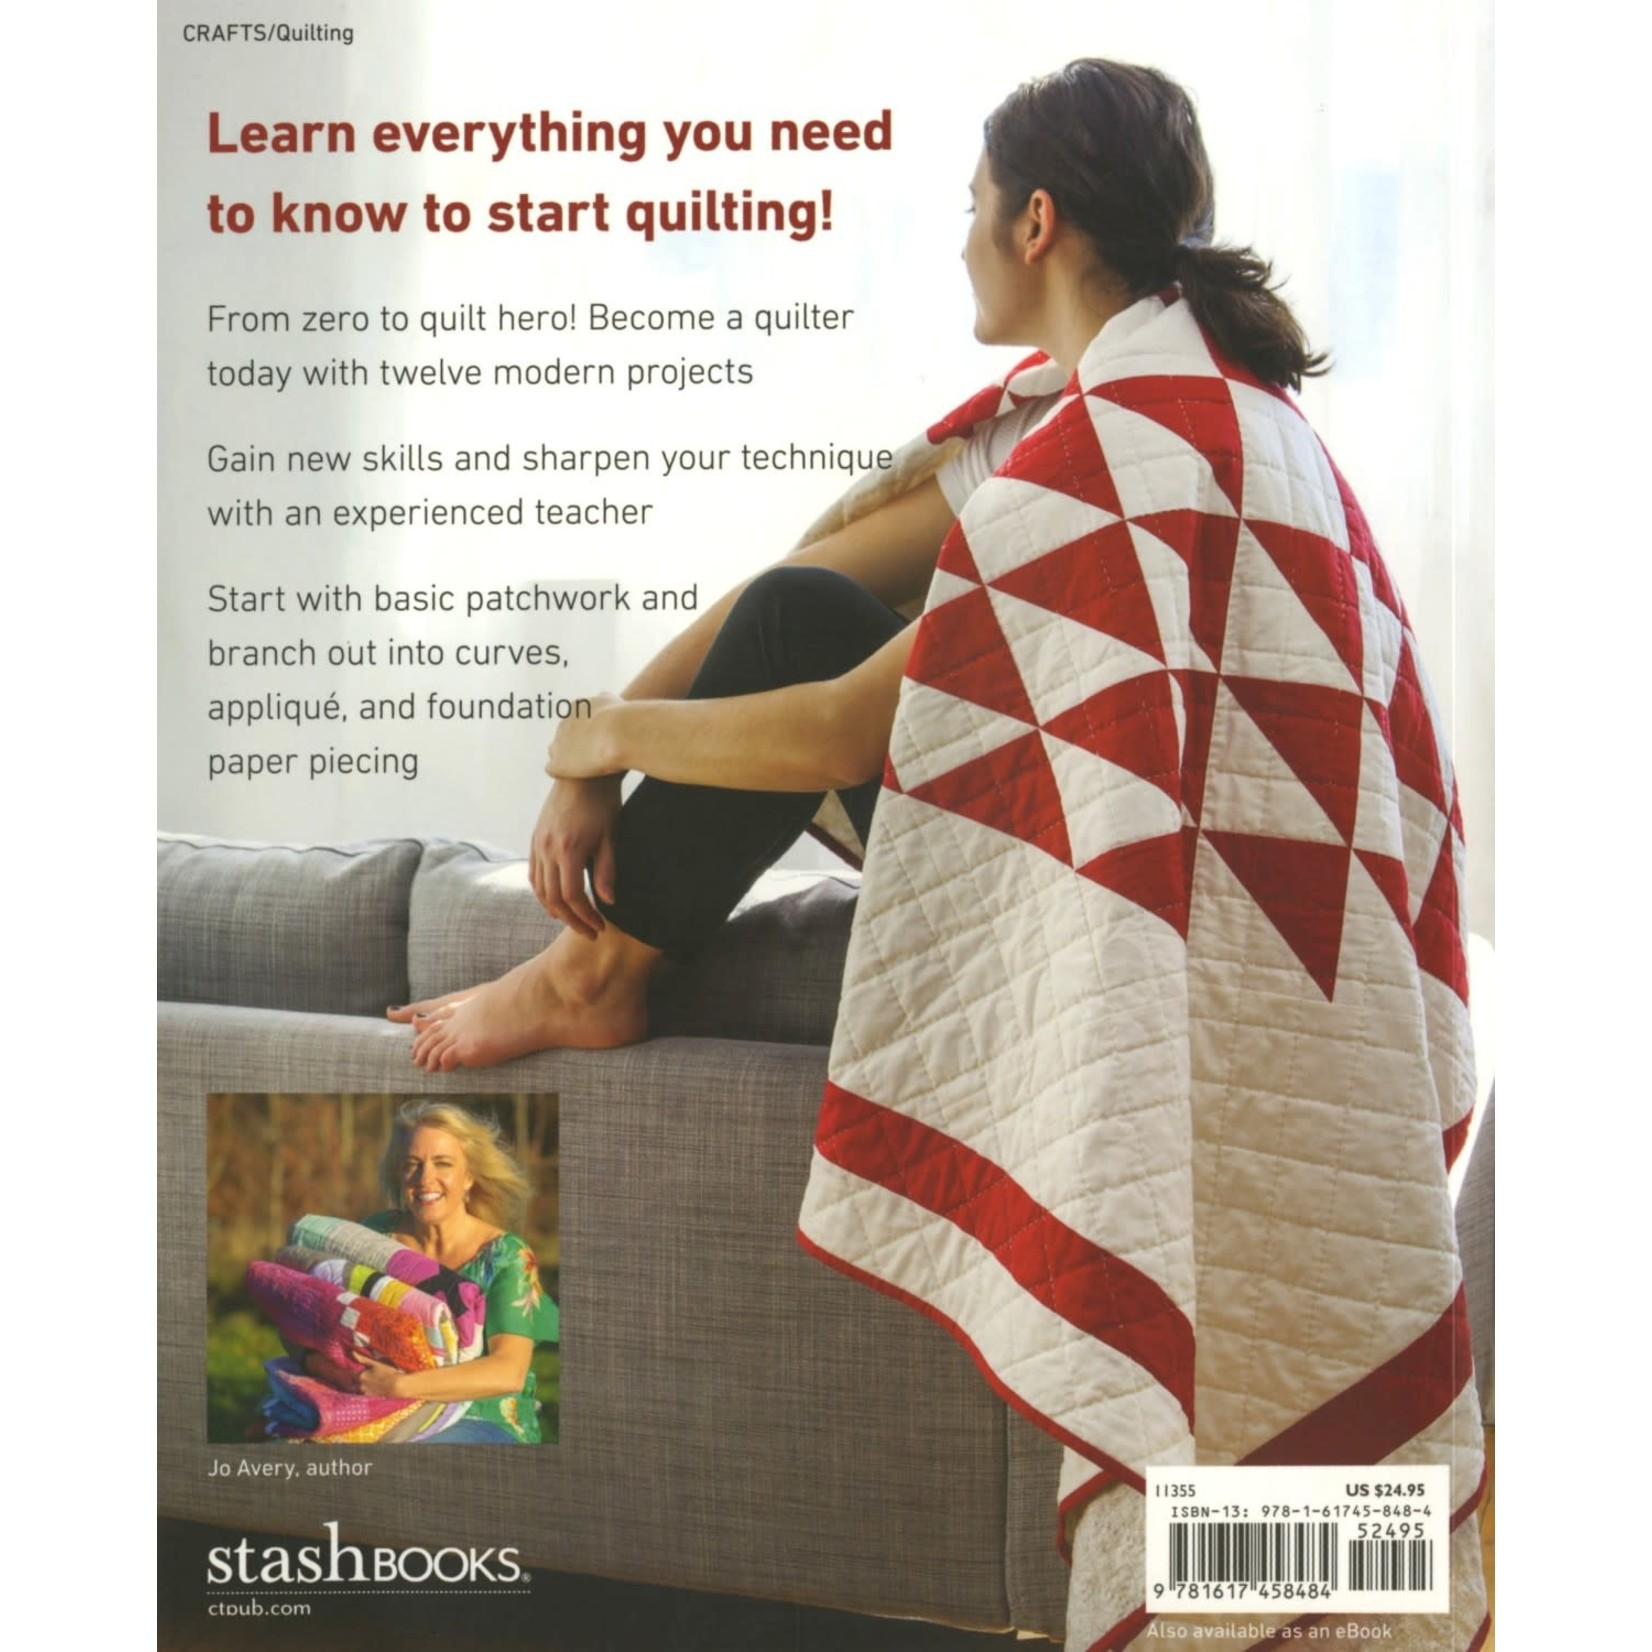 Stash Books Patchwork & Quilting basics by Jo Avery